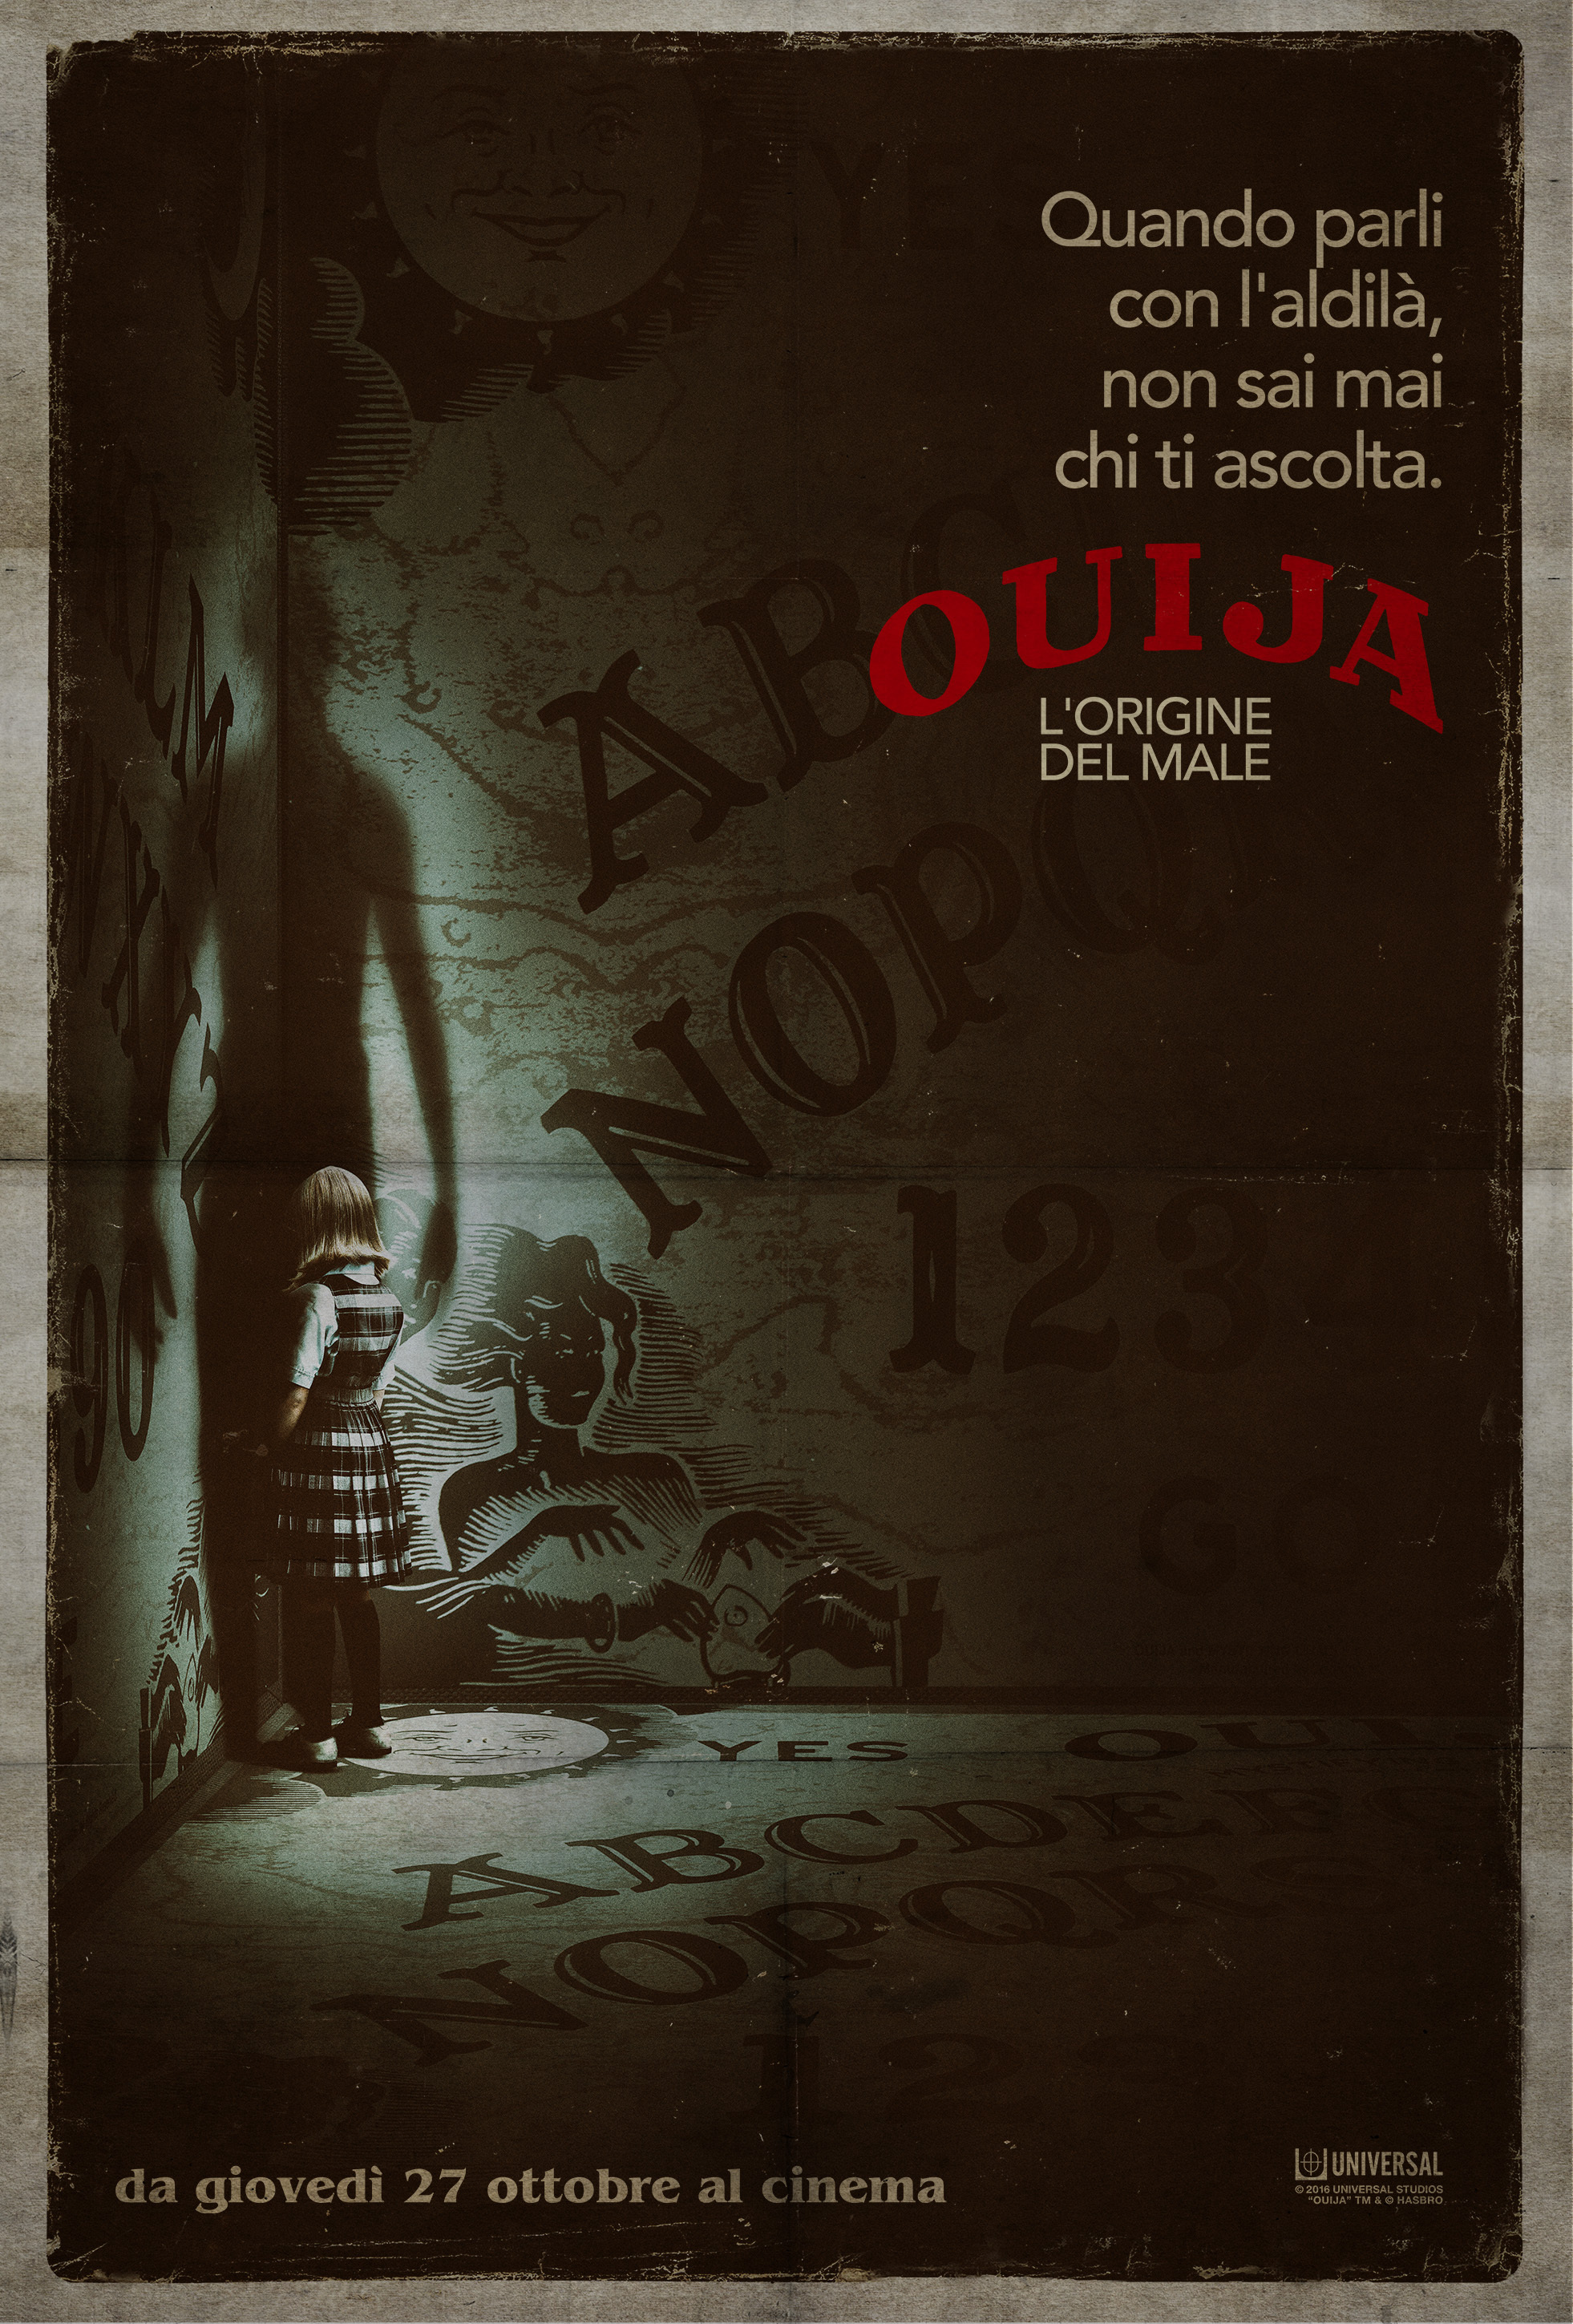 Ouija - L' origine del male